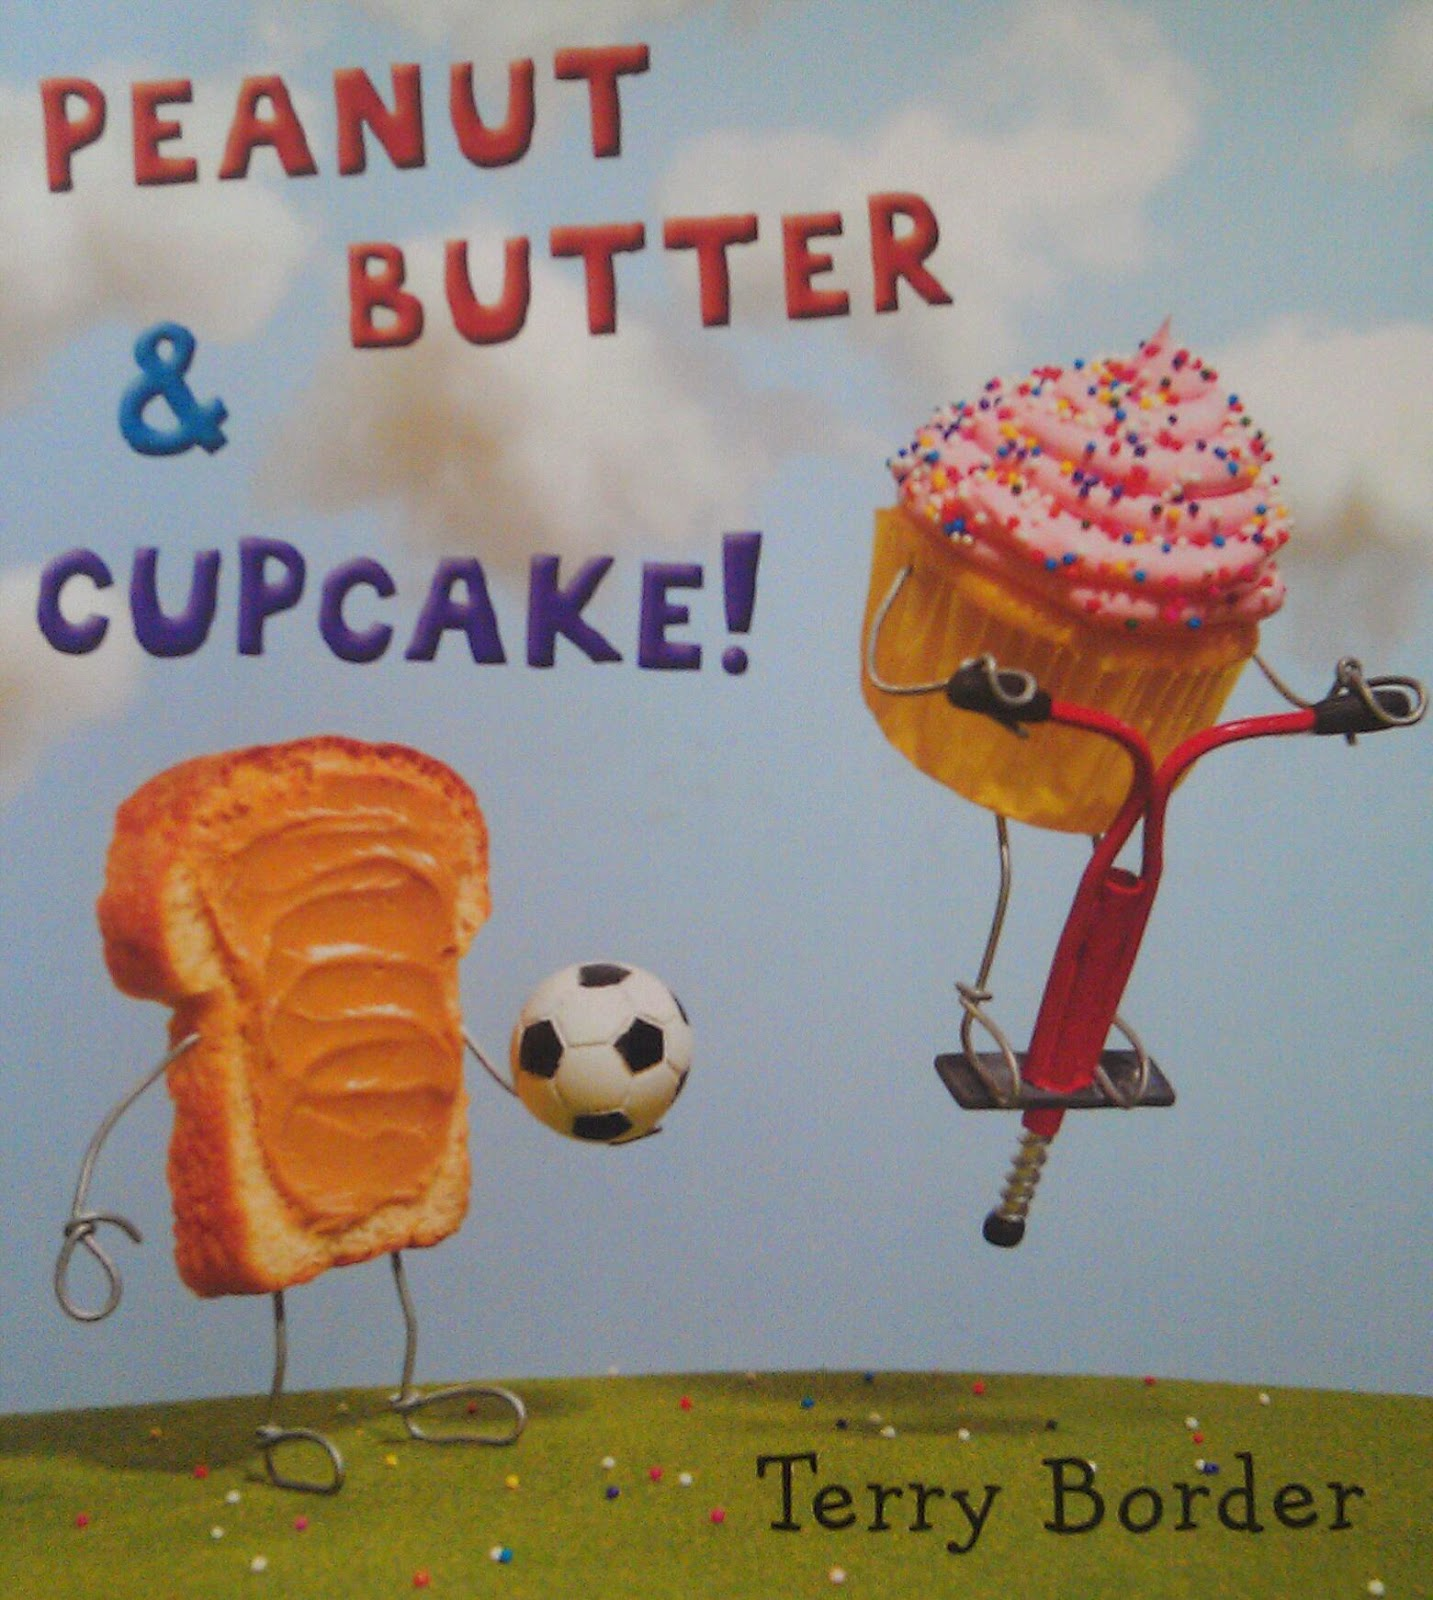 http://www.amazon.com/Peanut-Butter-Cupcake-Terry-Border/dp/0399167730/ref=sr_1_1?ie=UTF8&qid=1413563440&sr=8-1&keywords=peanut+butter+and+cupcake